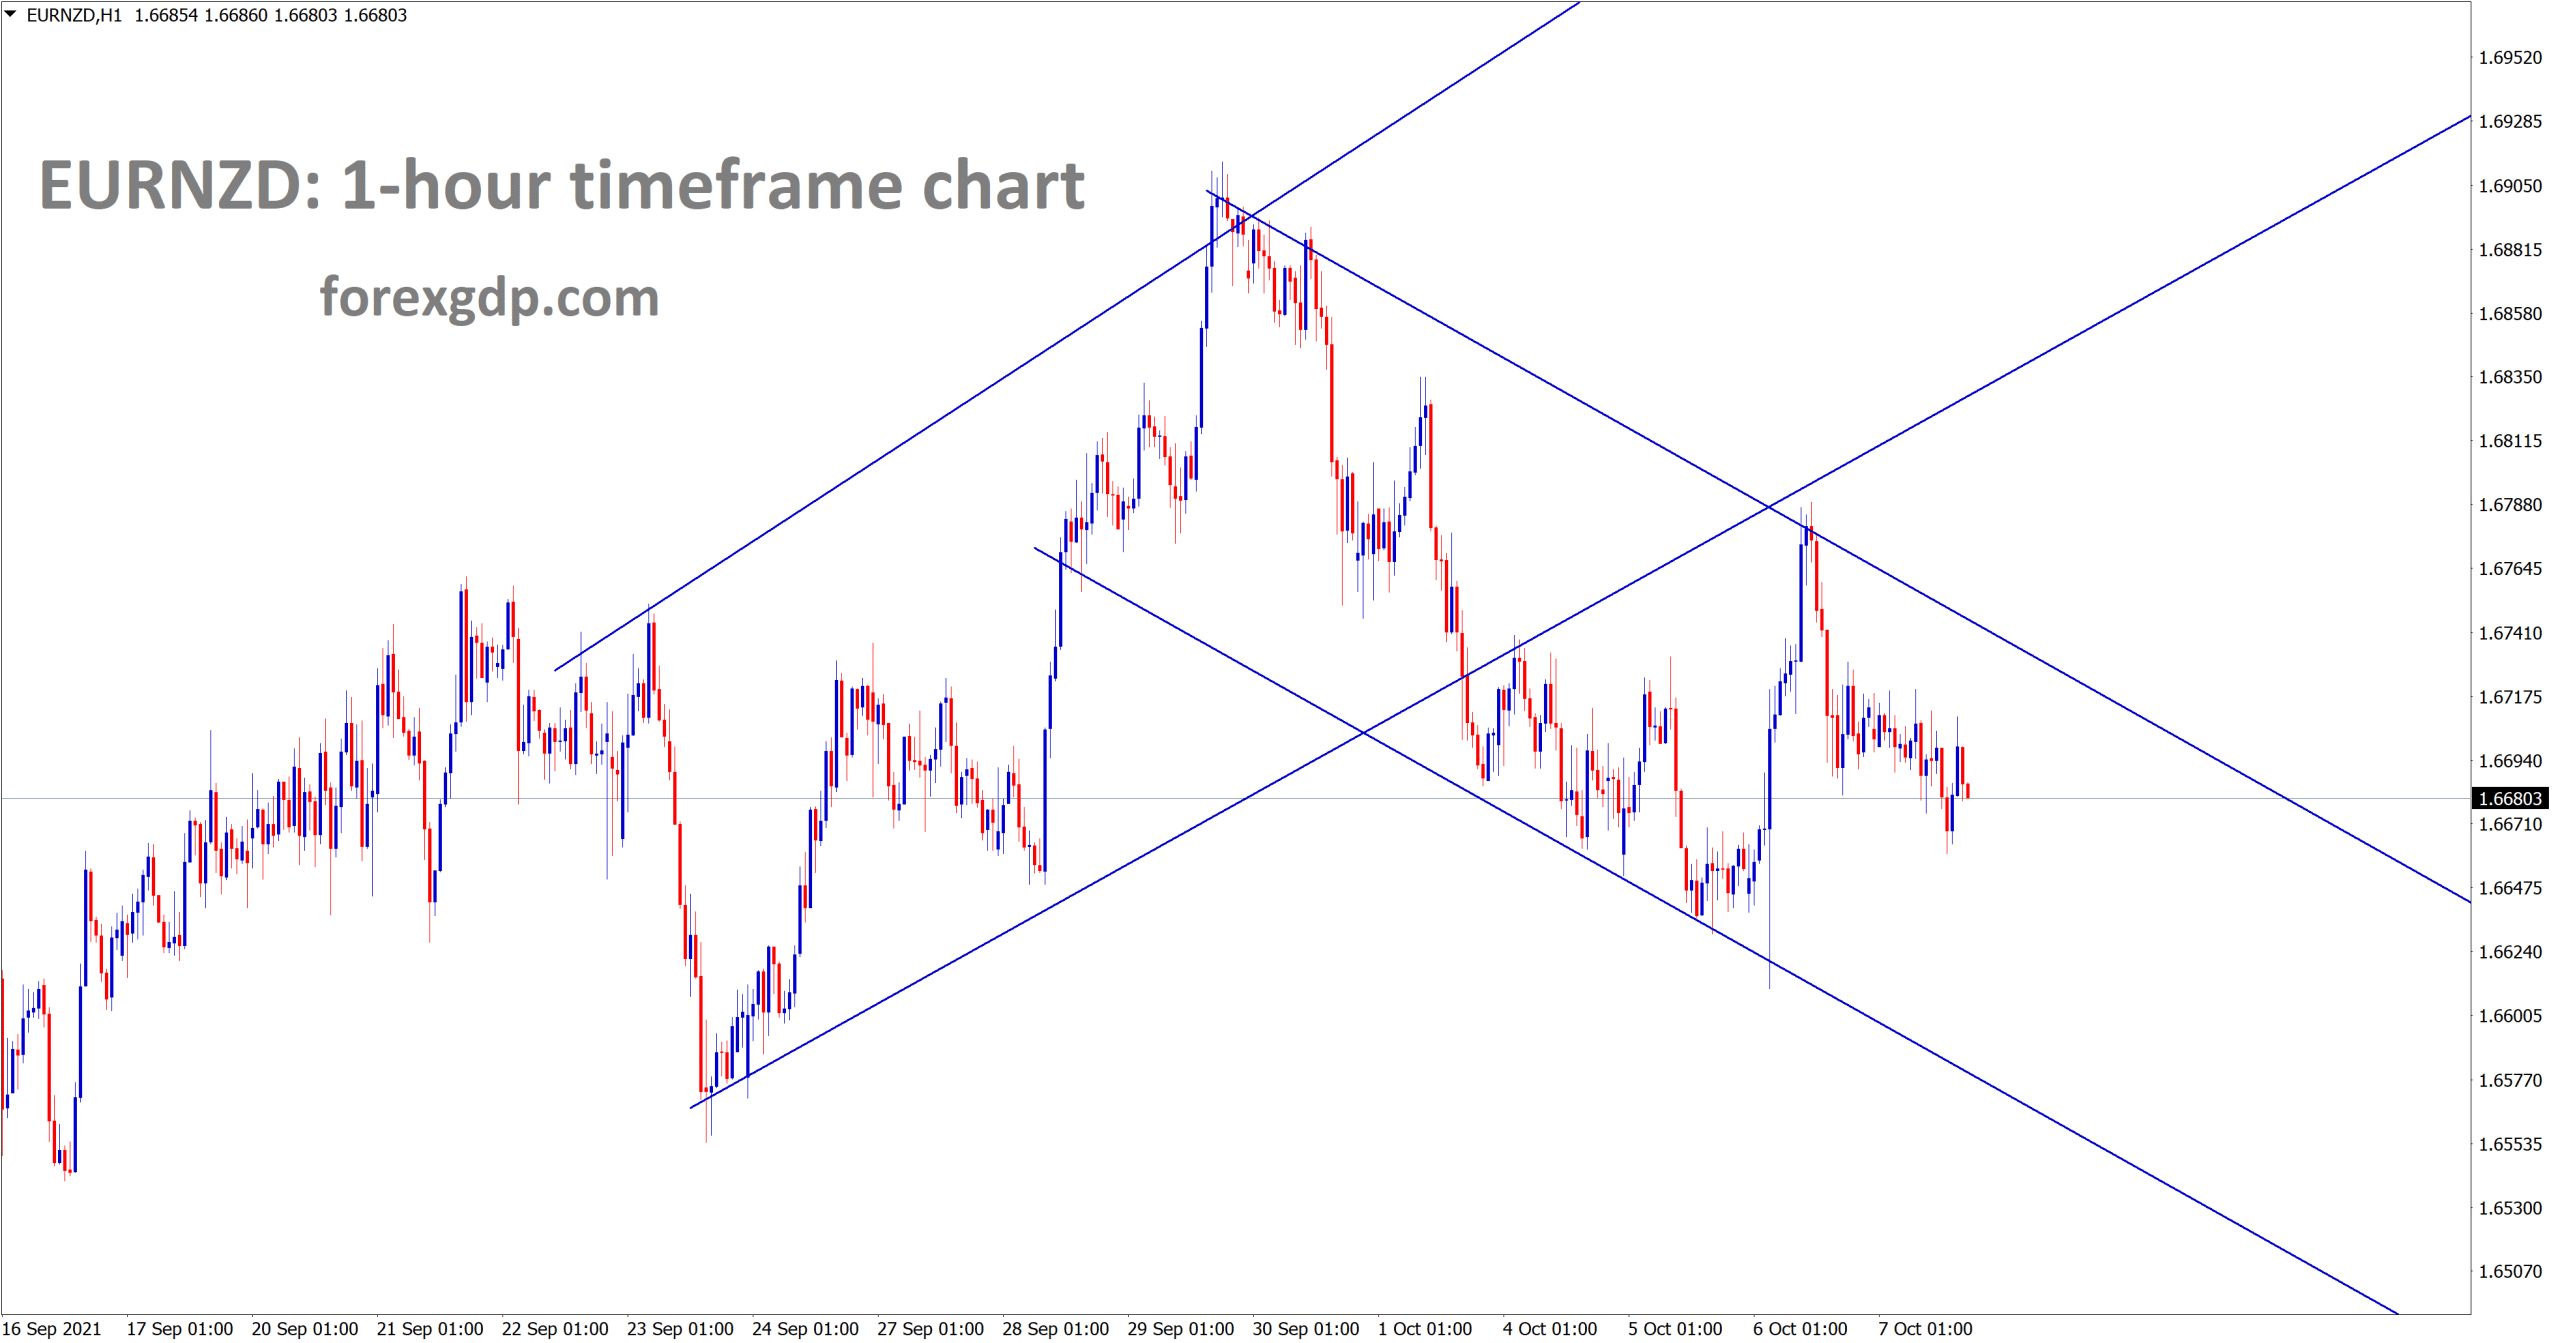 EURNZD is moving in a descenidng channel now after retesting the previous broken ascending channel